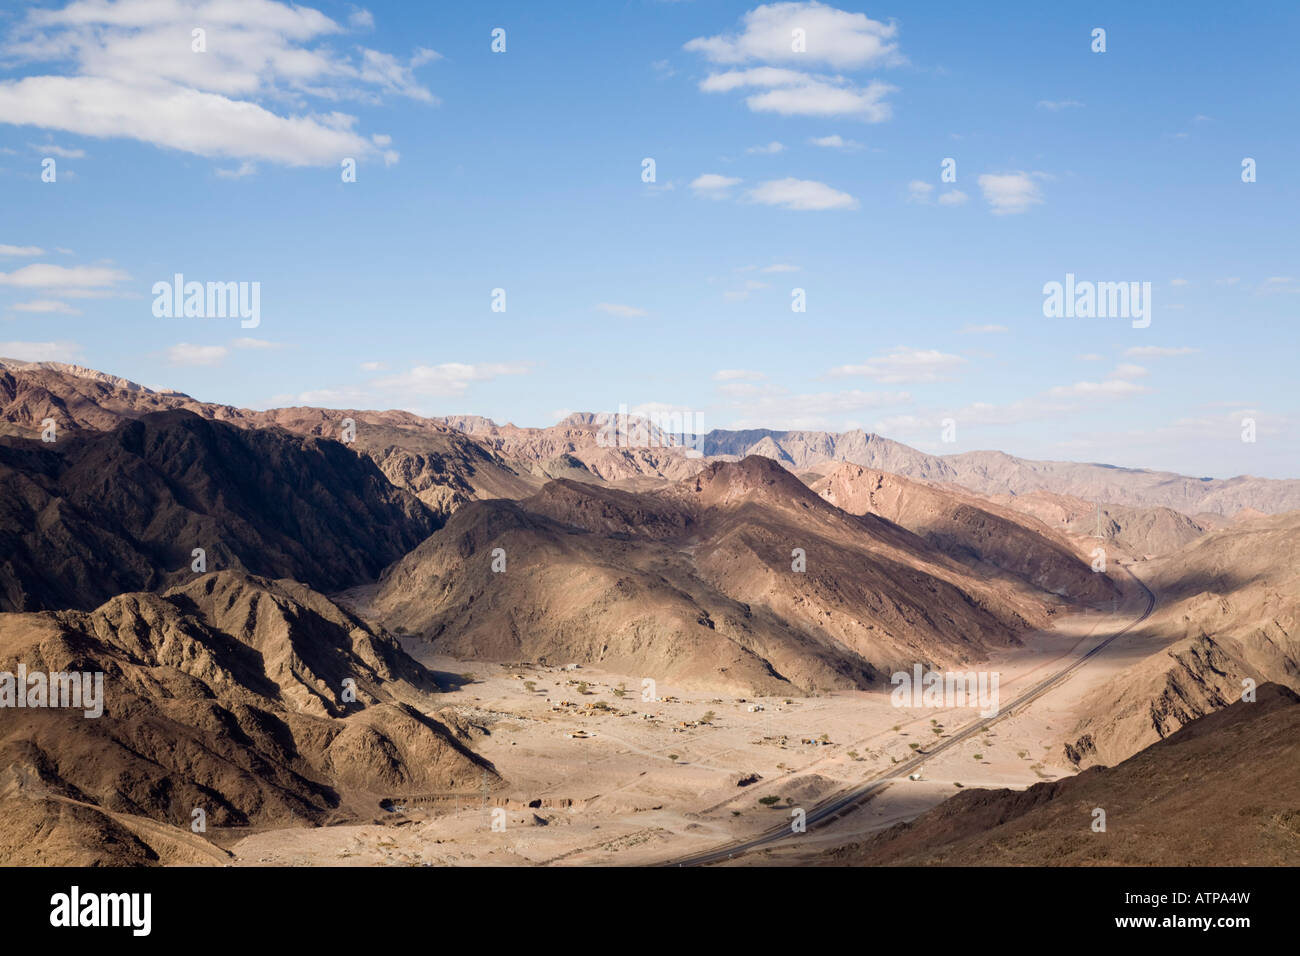 Main road to Taba through barren Sinai desert mountains. Taba Sinai Peninsula Egypt - Stock Image